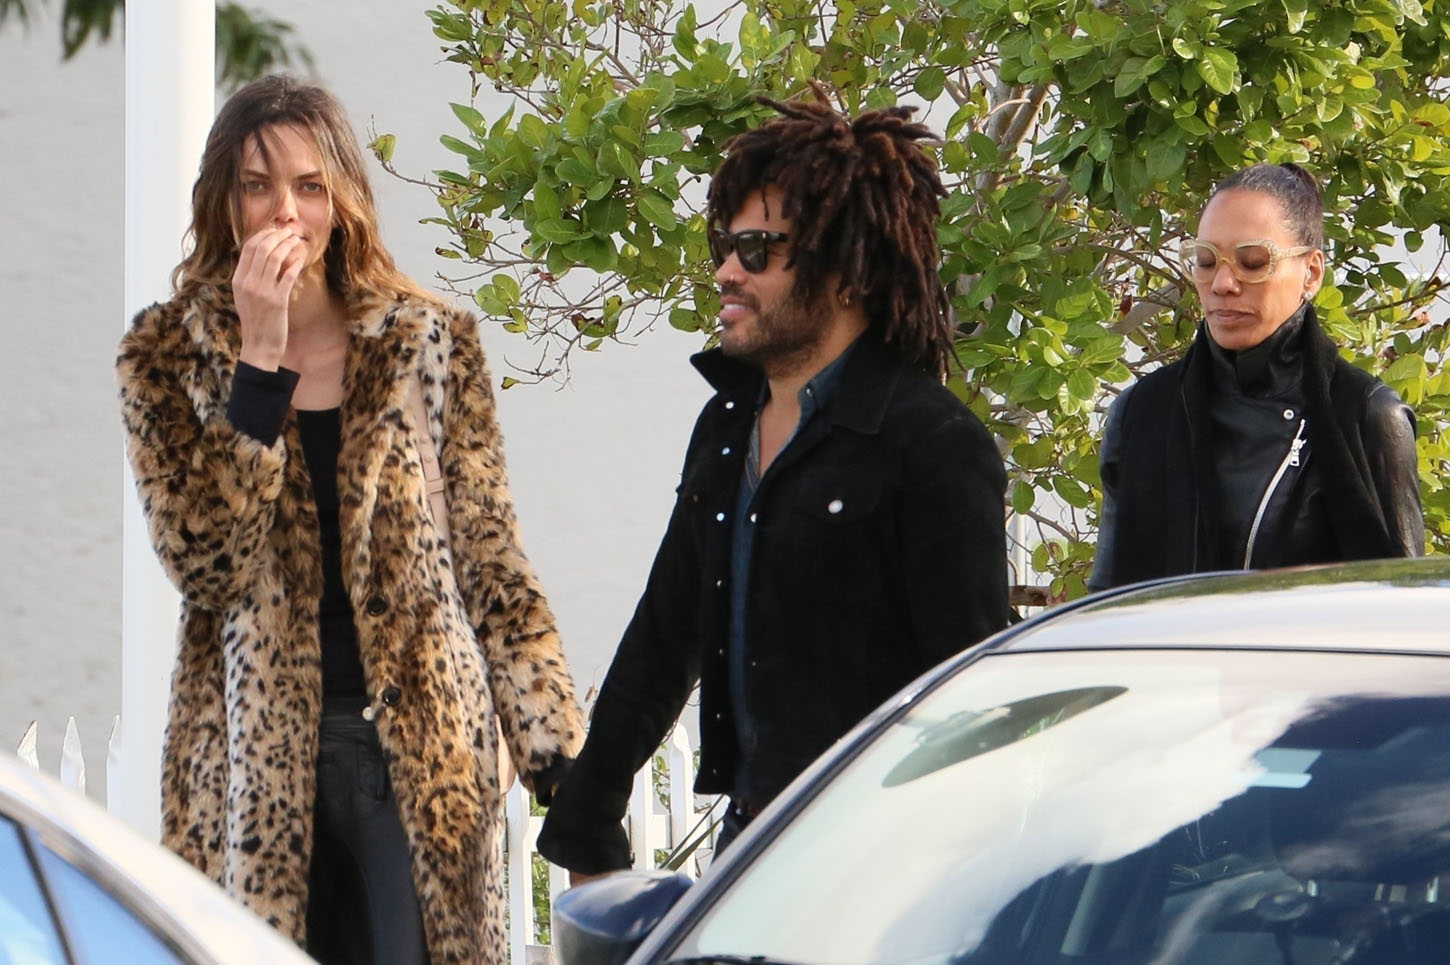 Miami Beach, FL  - *EXCLUSIVE*  - Lenny Kravitz enjoys a day out with his new girlfriend. The new couple lunch with Barbara Becker (Boris Becker's ex wife). The new couple look happy as they kiss and hug while out for a stroll.  Pictured: Lenny Kravitz  BACKGRID USA 7 JANUARY 2018, Image: 359503021, License: Rights-managed, Restrictions: , Model Release: no, Credit line: Profimedia, AKM-GSI